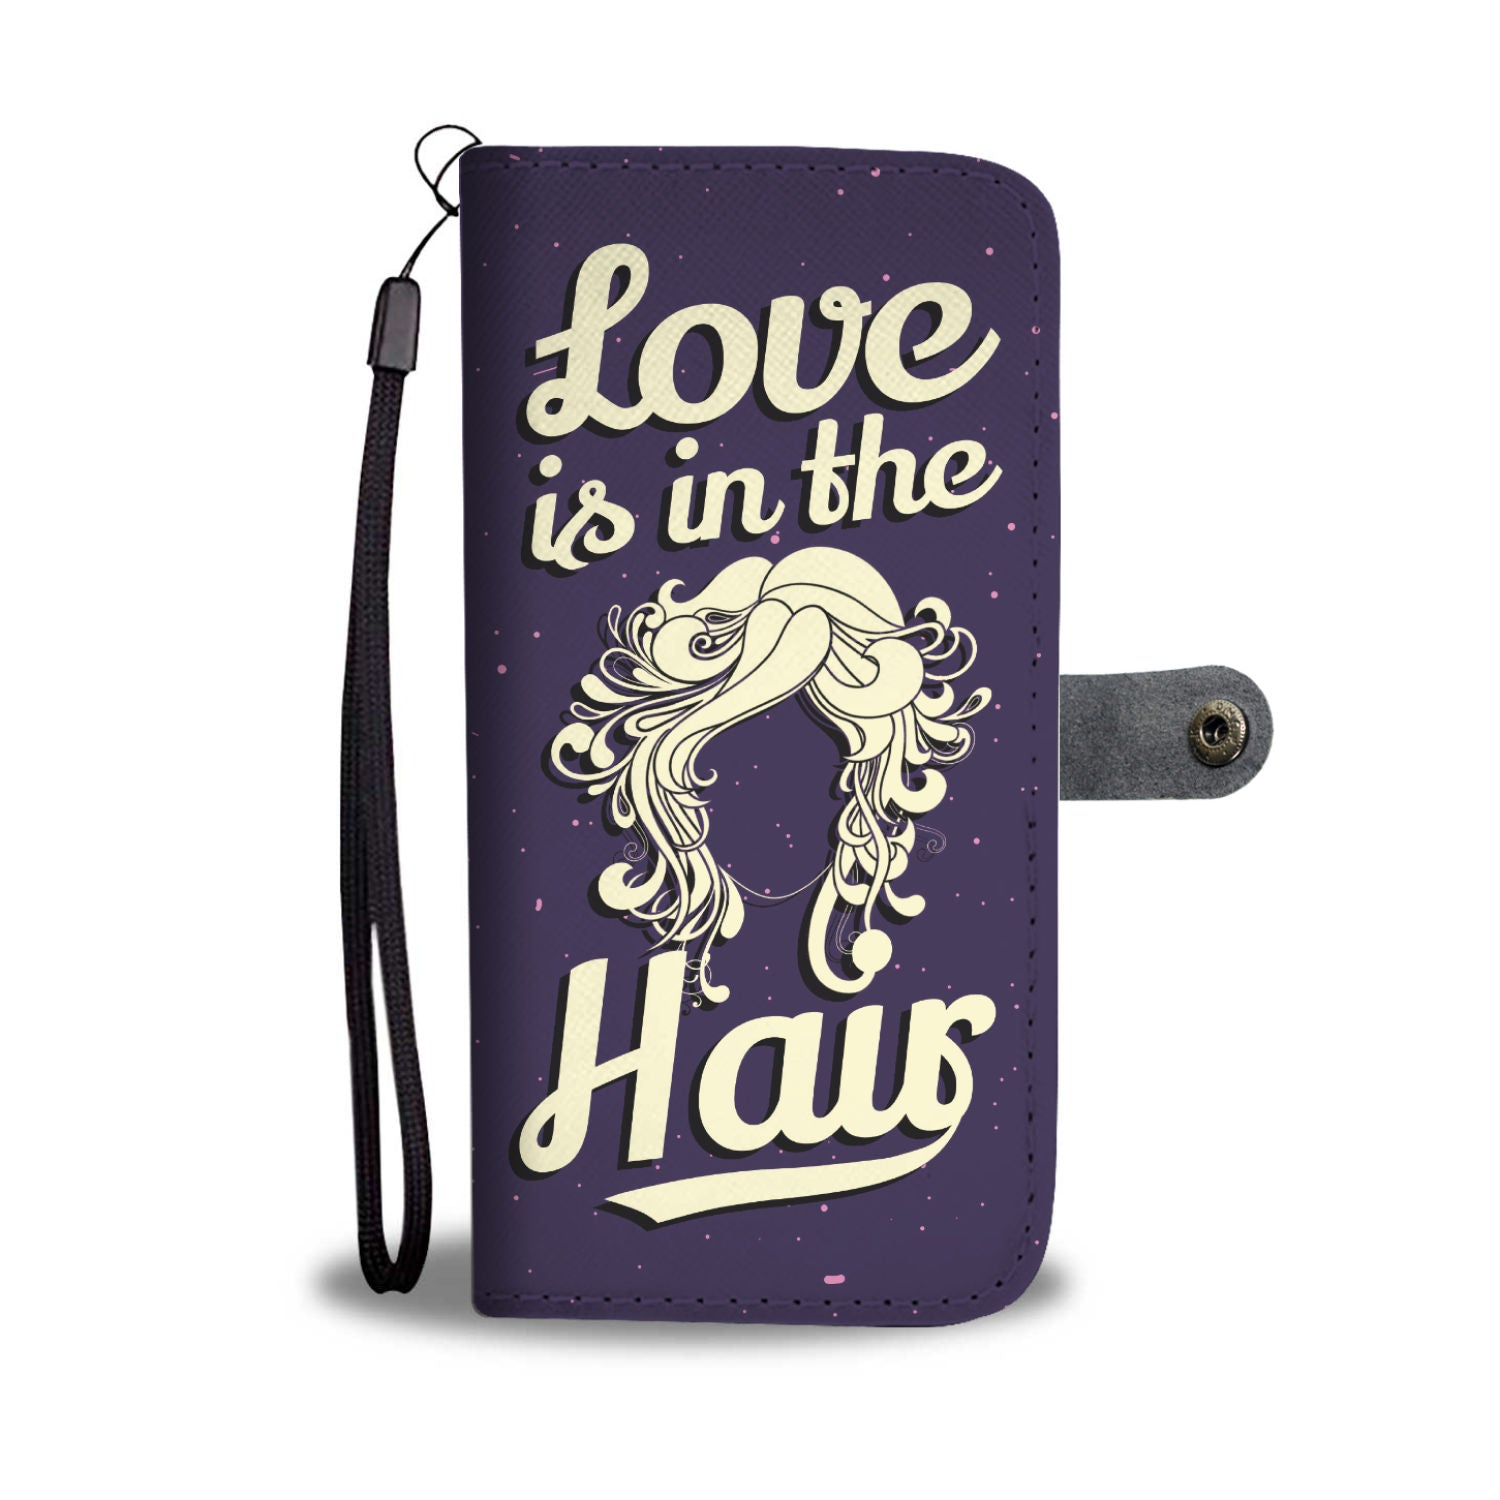 CUTE PHONE CASE WALLET for HAIRDRESSERS/HAIRSTYLISTS